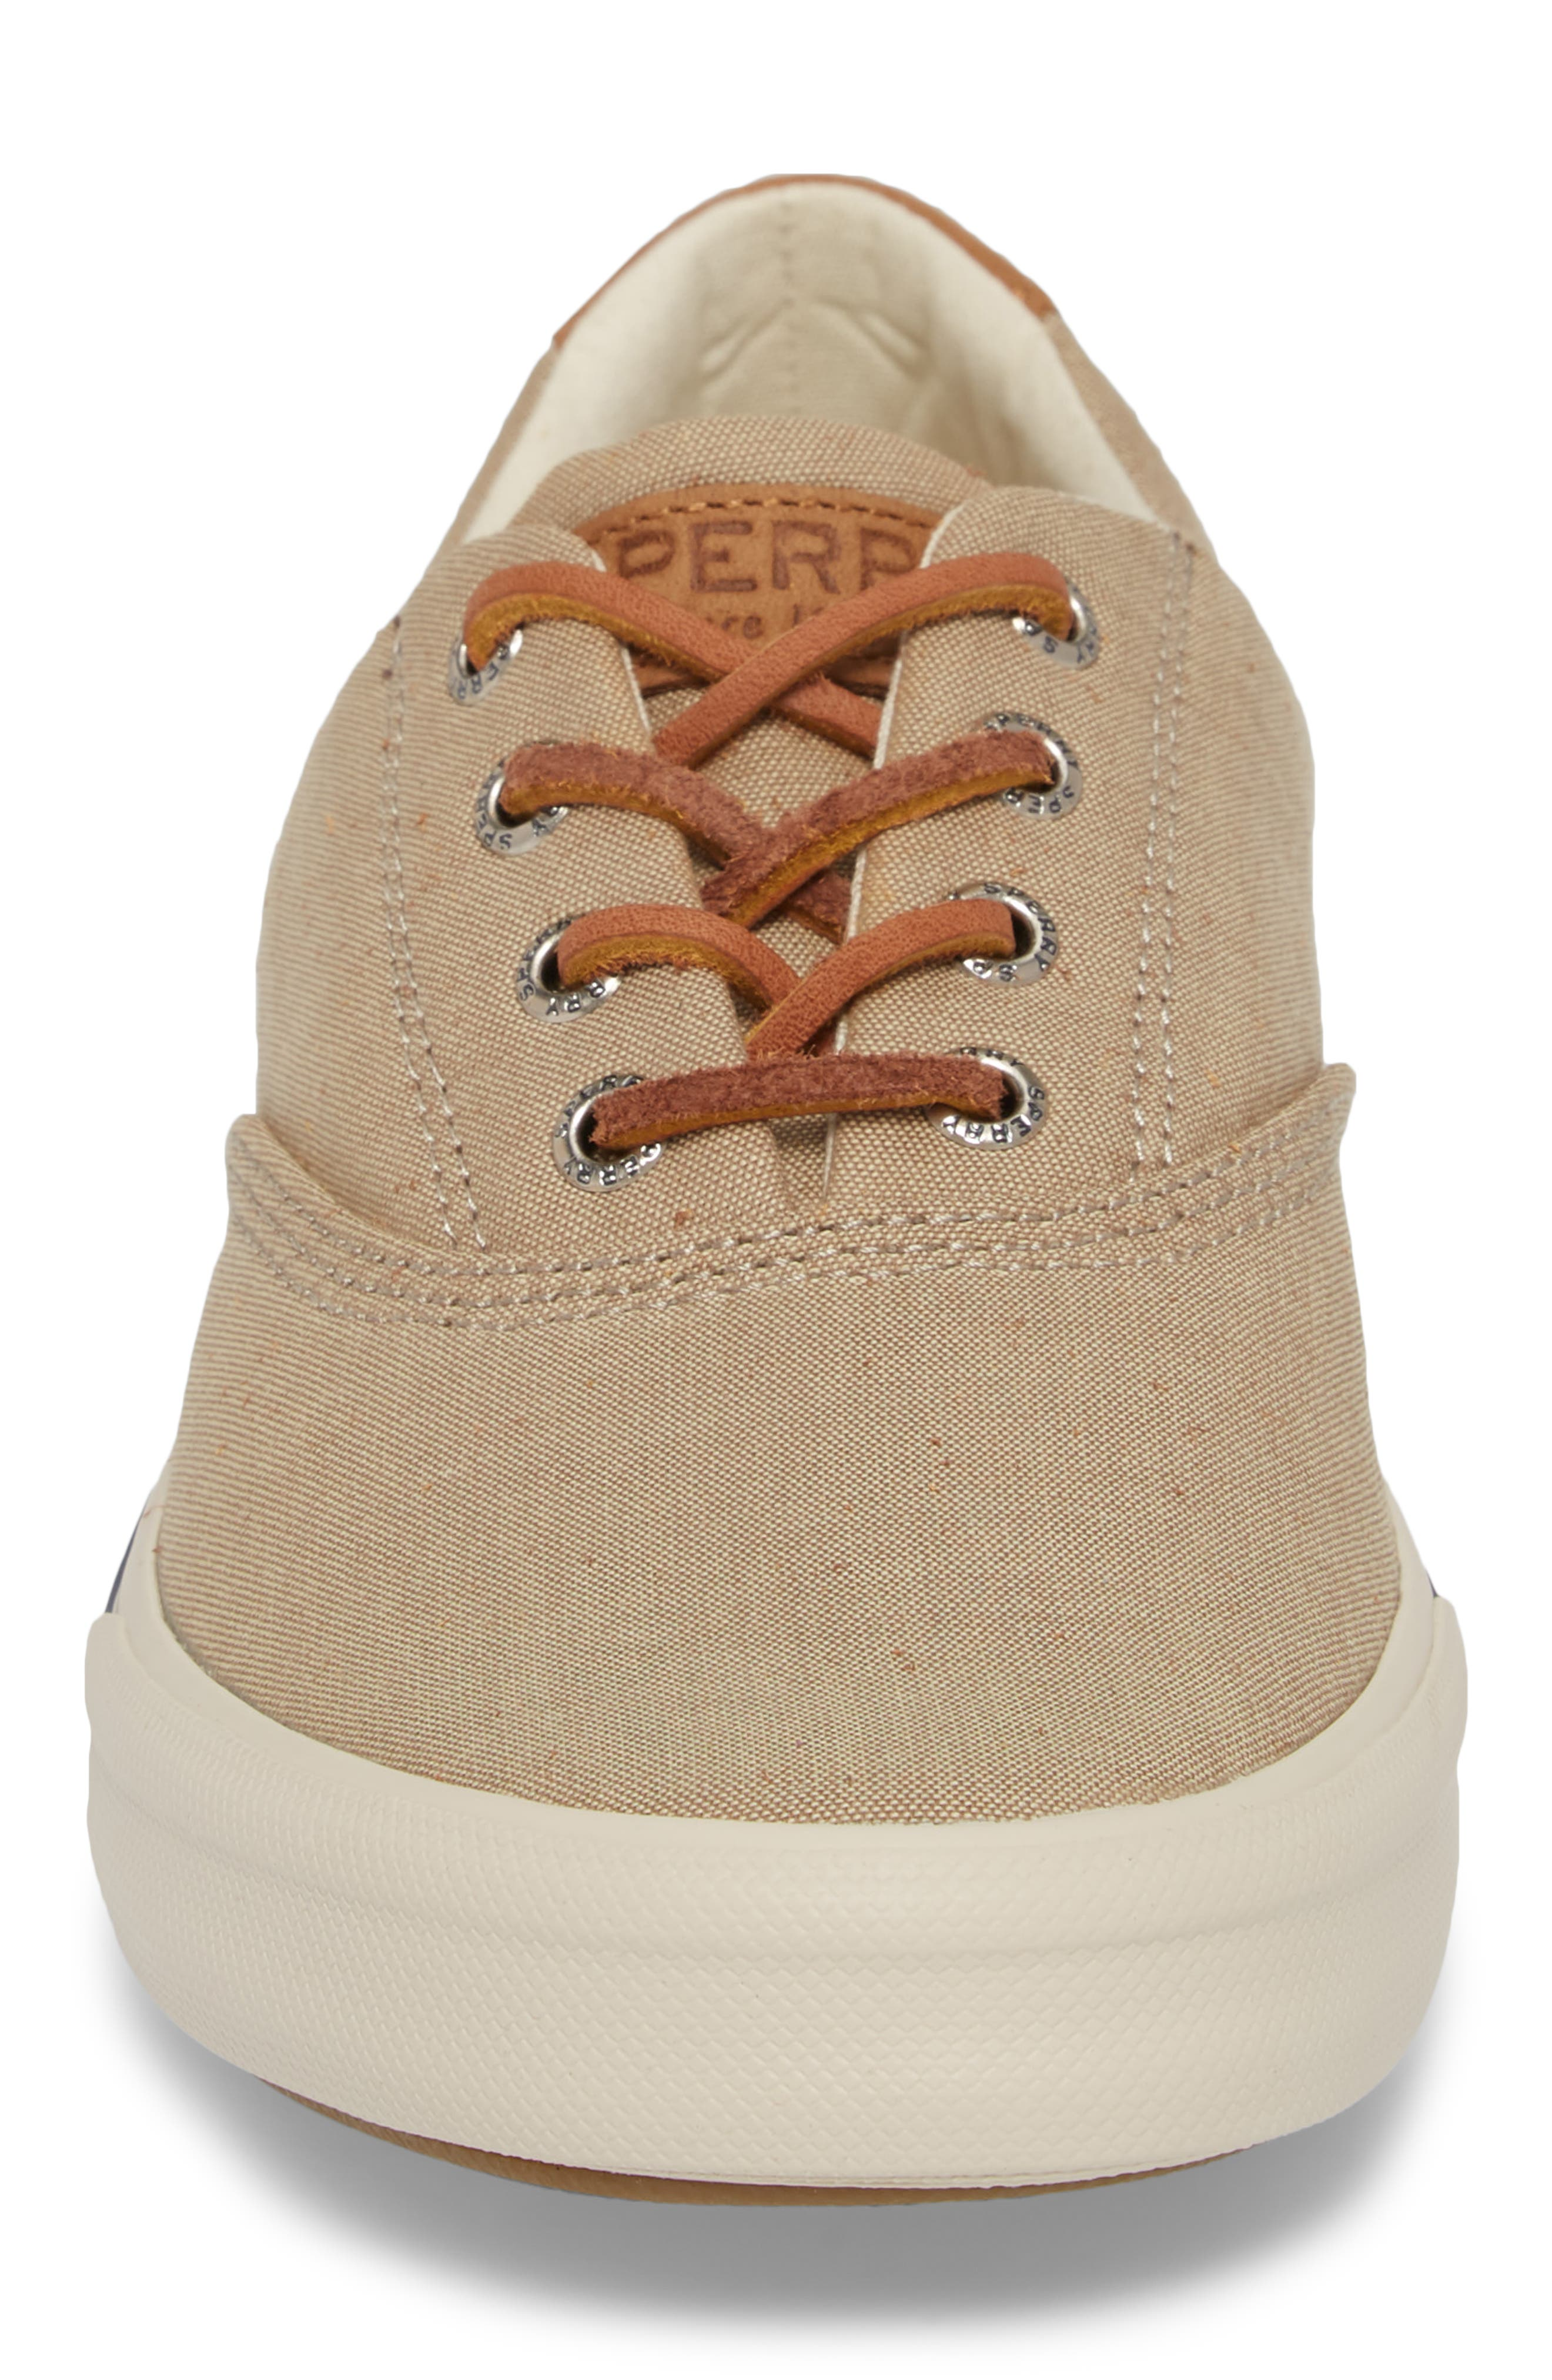 Striper 2 CVO Sneaker,                             Alternate thumbnail 4, color,                             Chino Canvas